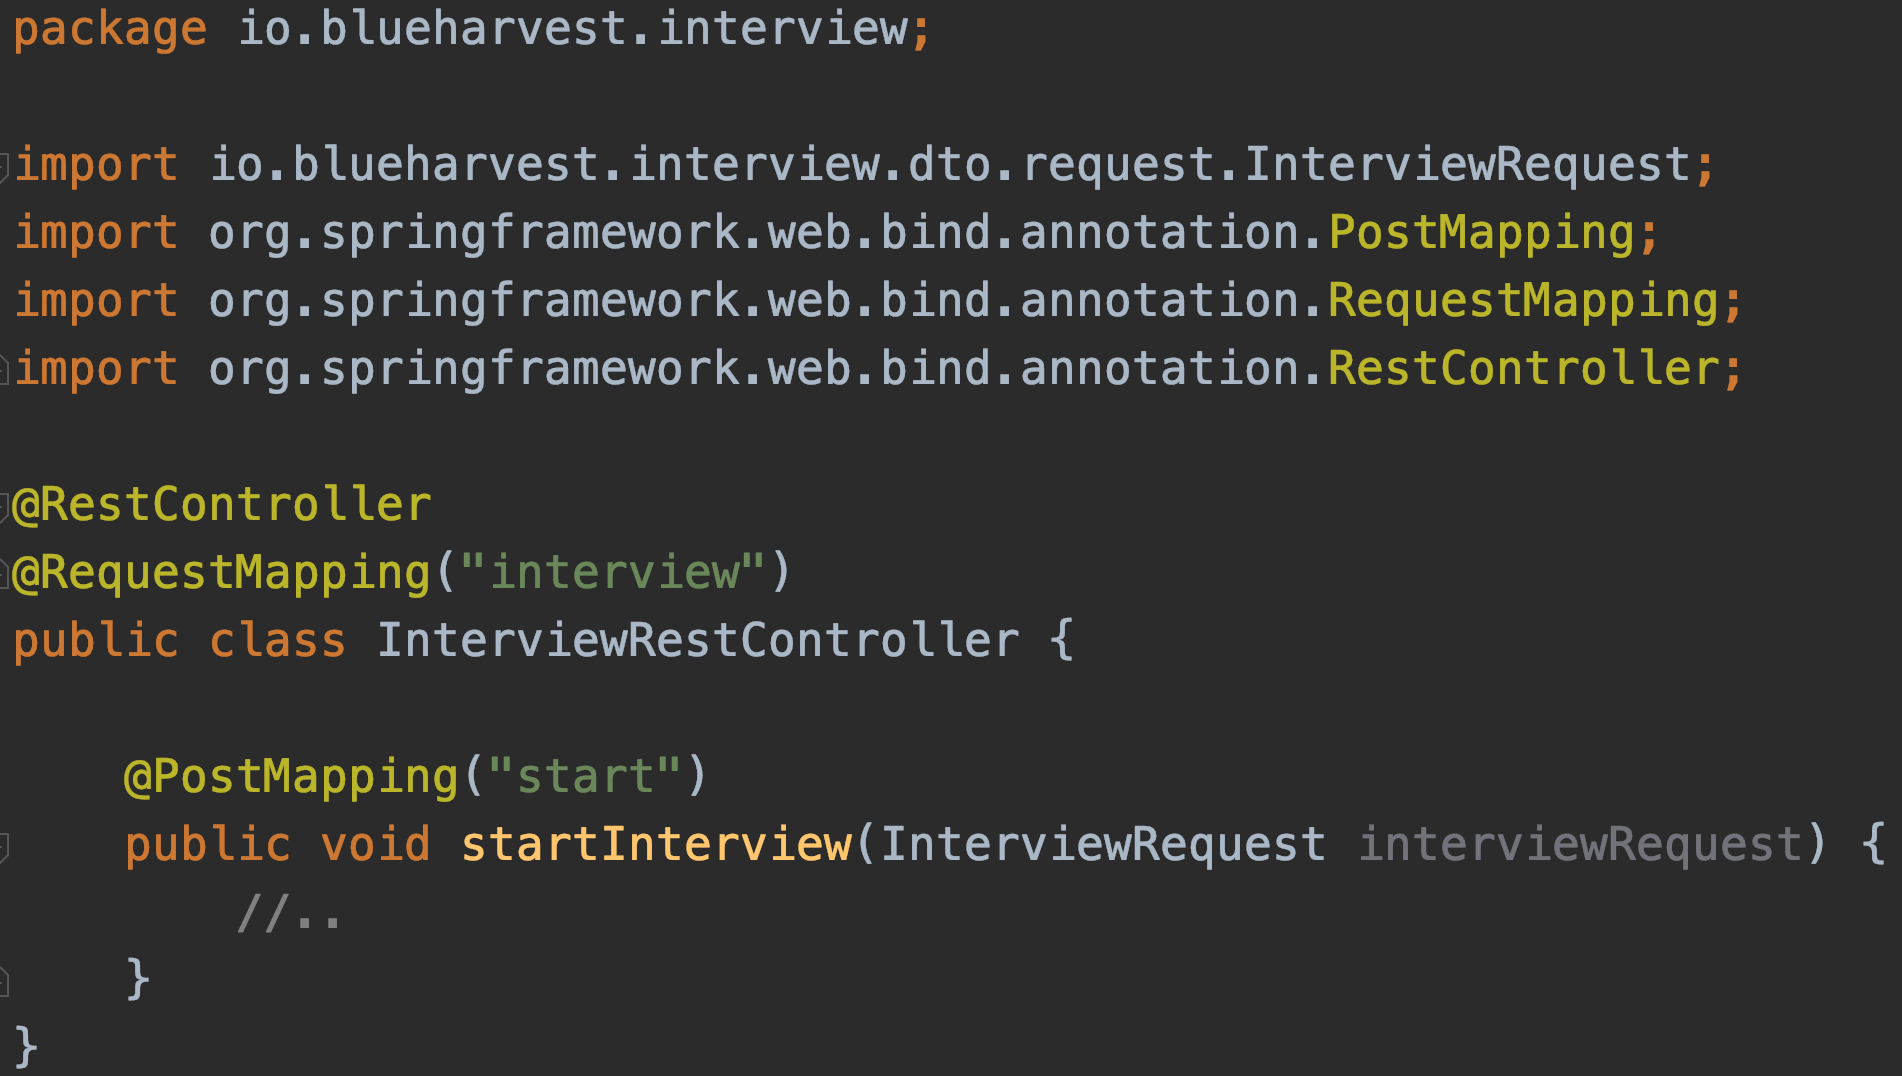 Interview Process for Software Engineers - Blue Harvest Tech